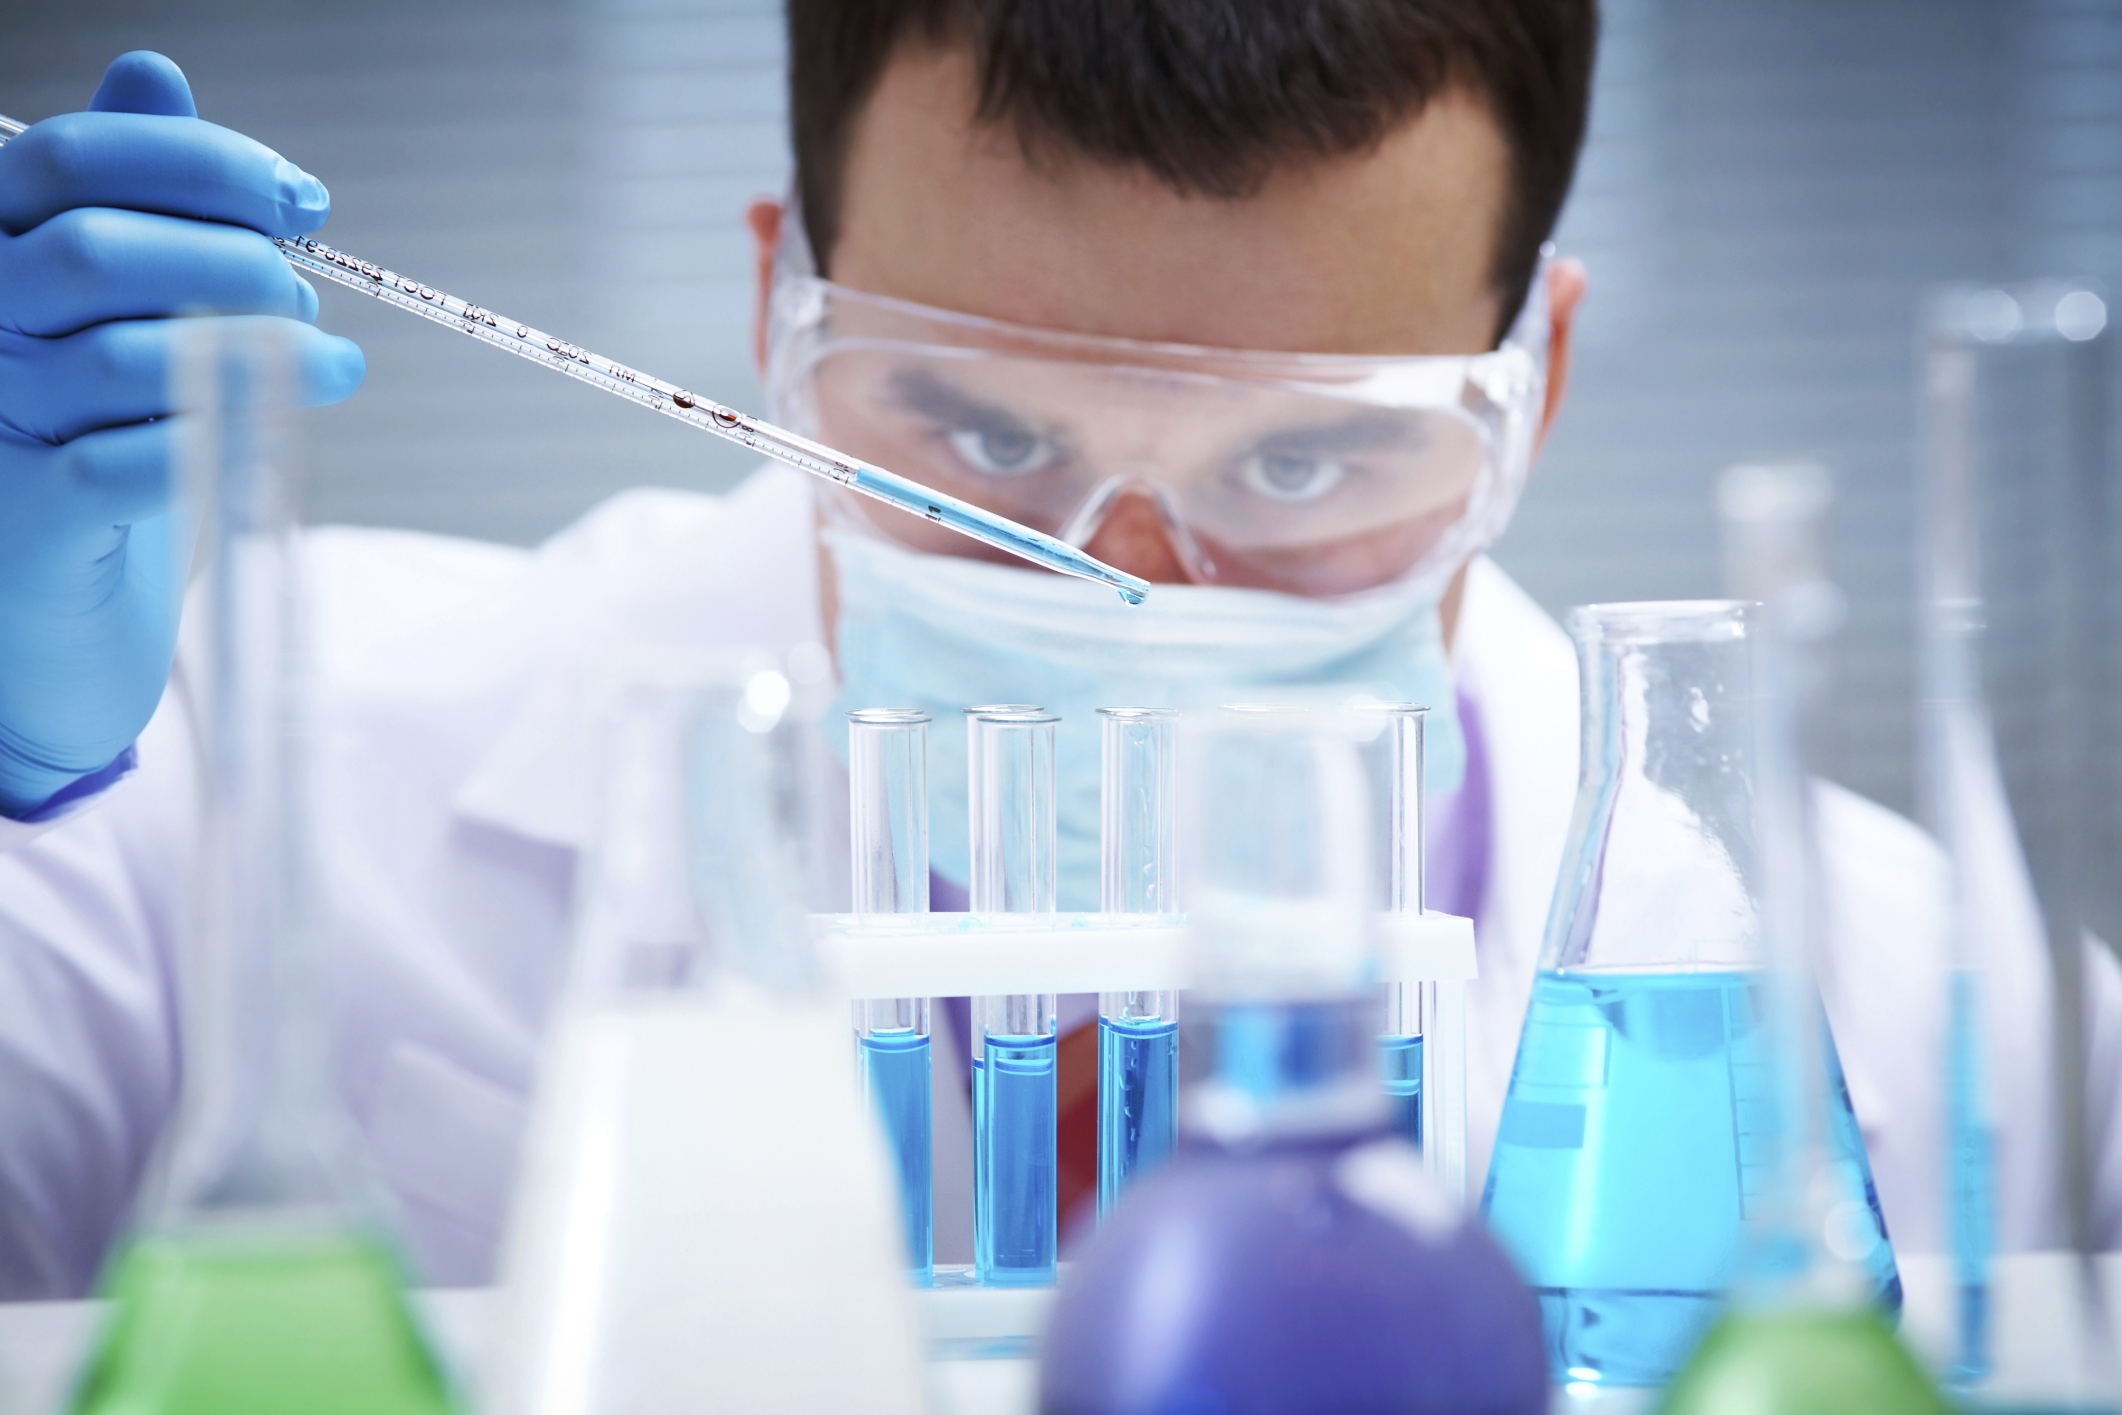 Lab, image courtesy of Thinkstock / YanLev.